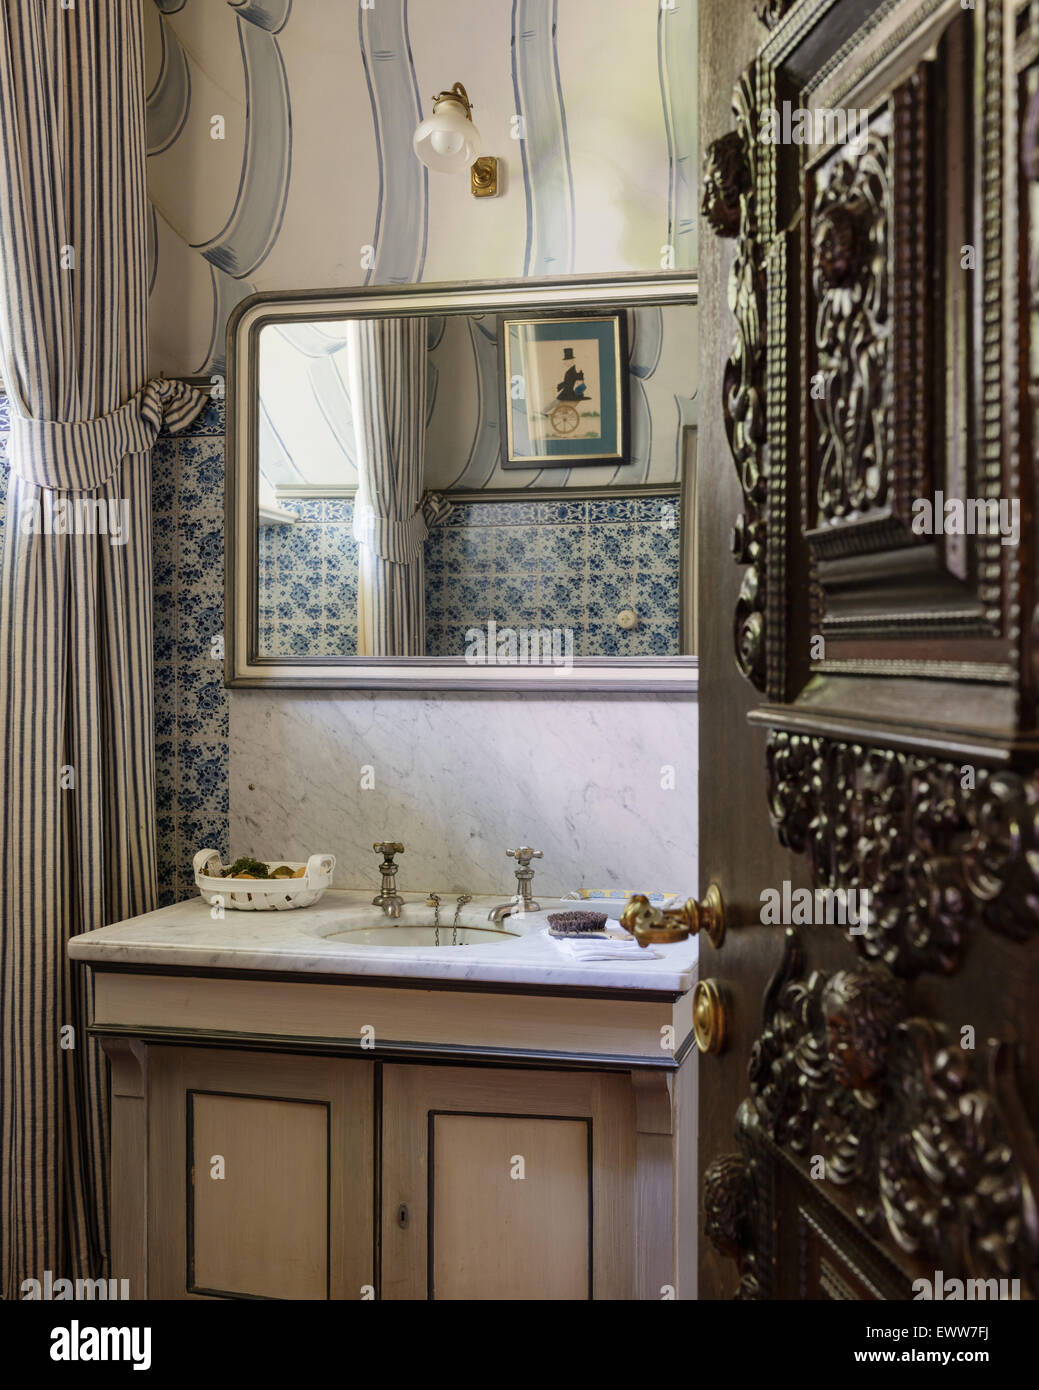 Marble topped vanity unit in cloakroom with tiled walls - Stock Image